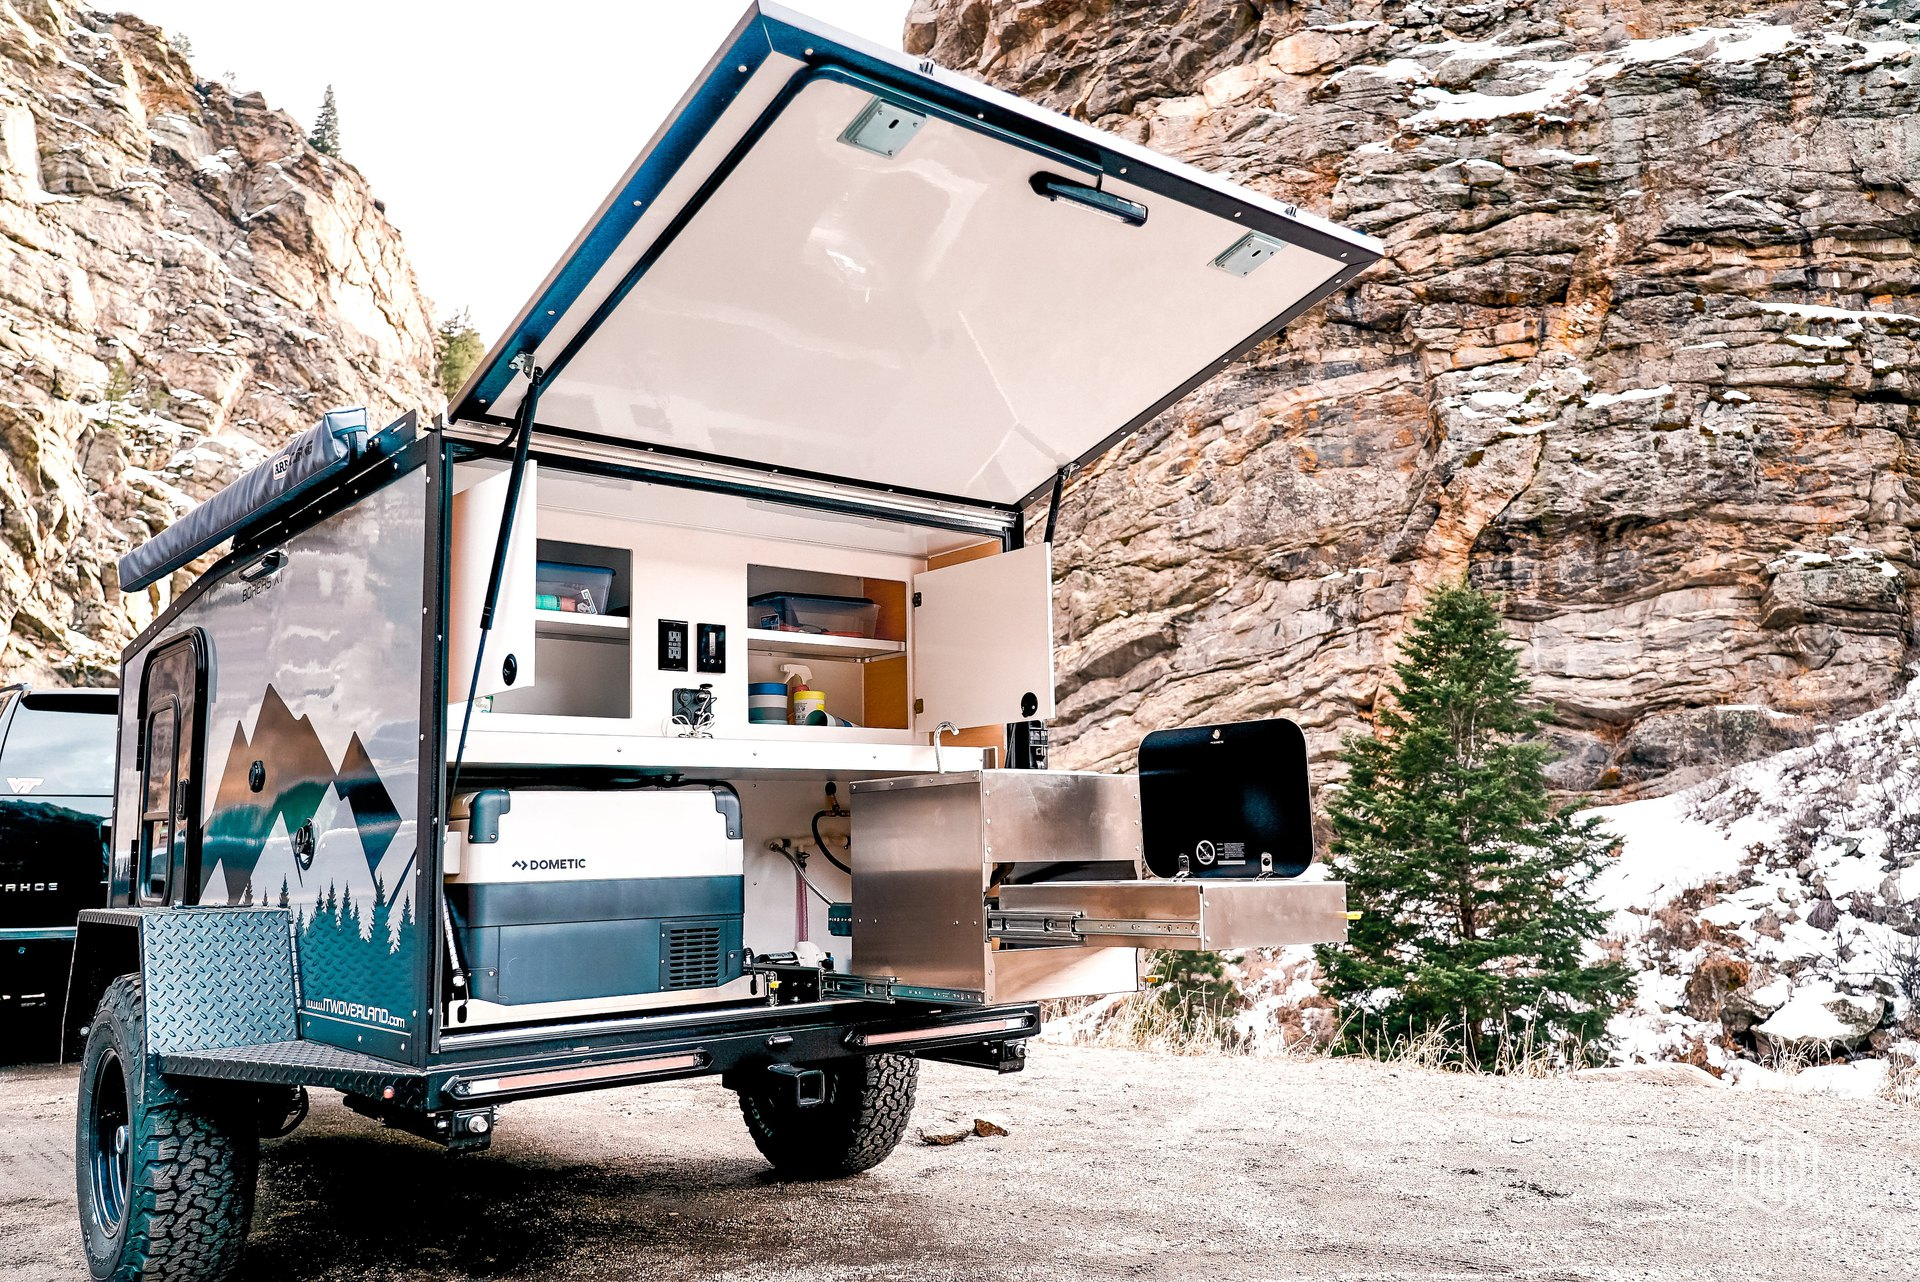 Camper Storage Ideas to Make Your Next Trip More Enjoyable